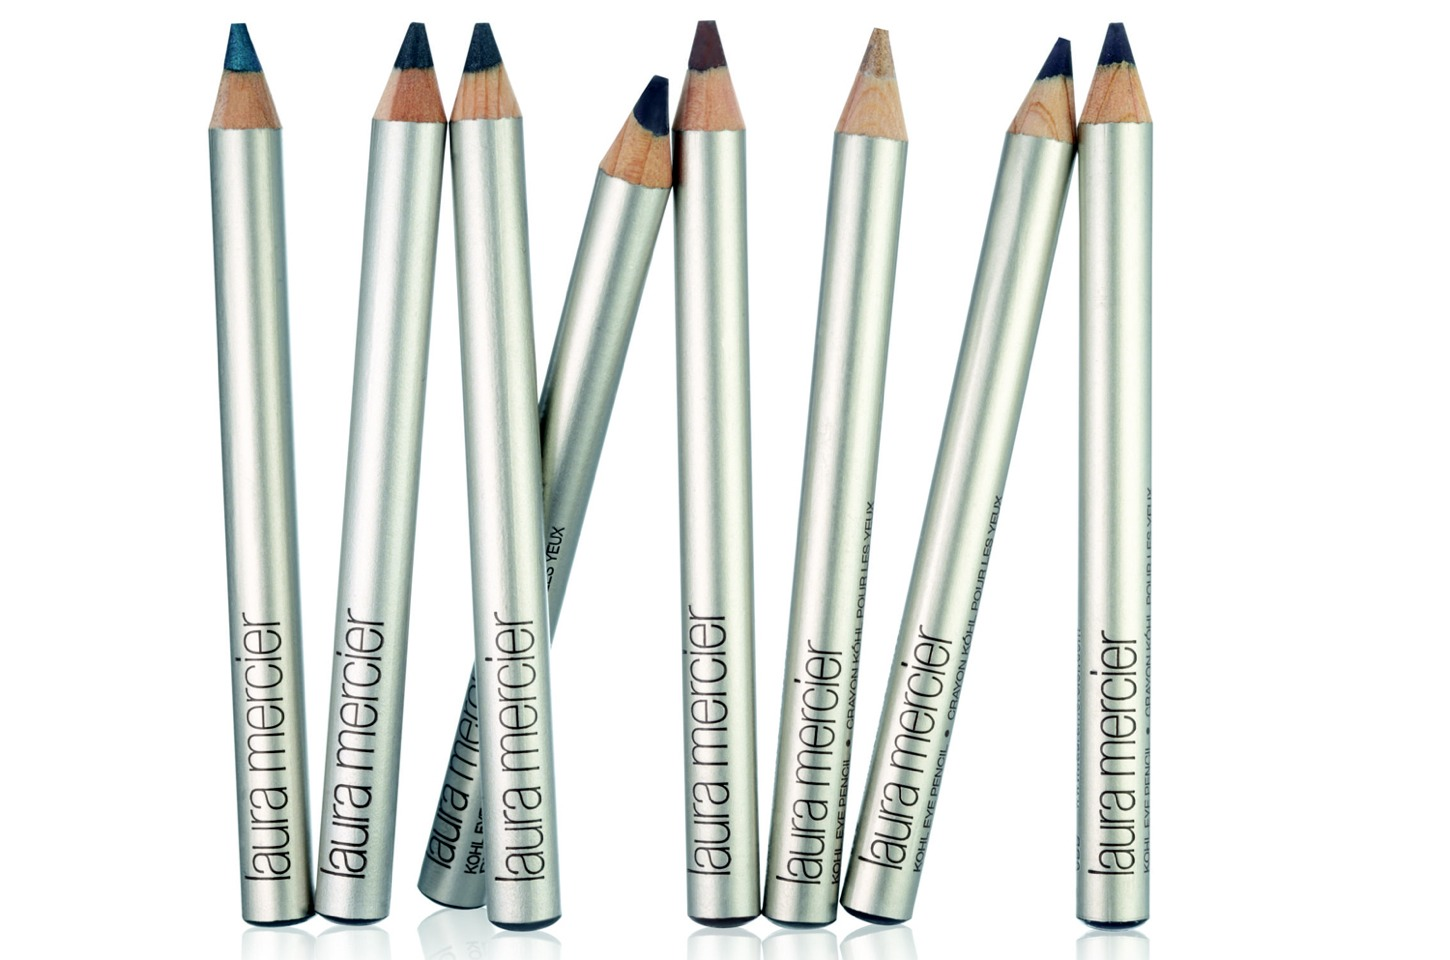 Tired of applying your eye liner then instantly having to wipe it off and restart do to the annoying crumbling motion when you swipe the pencil? Leave your eye liner pencil in the freezer for 15 minutes prior to applying your makeup. It should glide seamlessly after that.